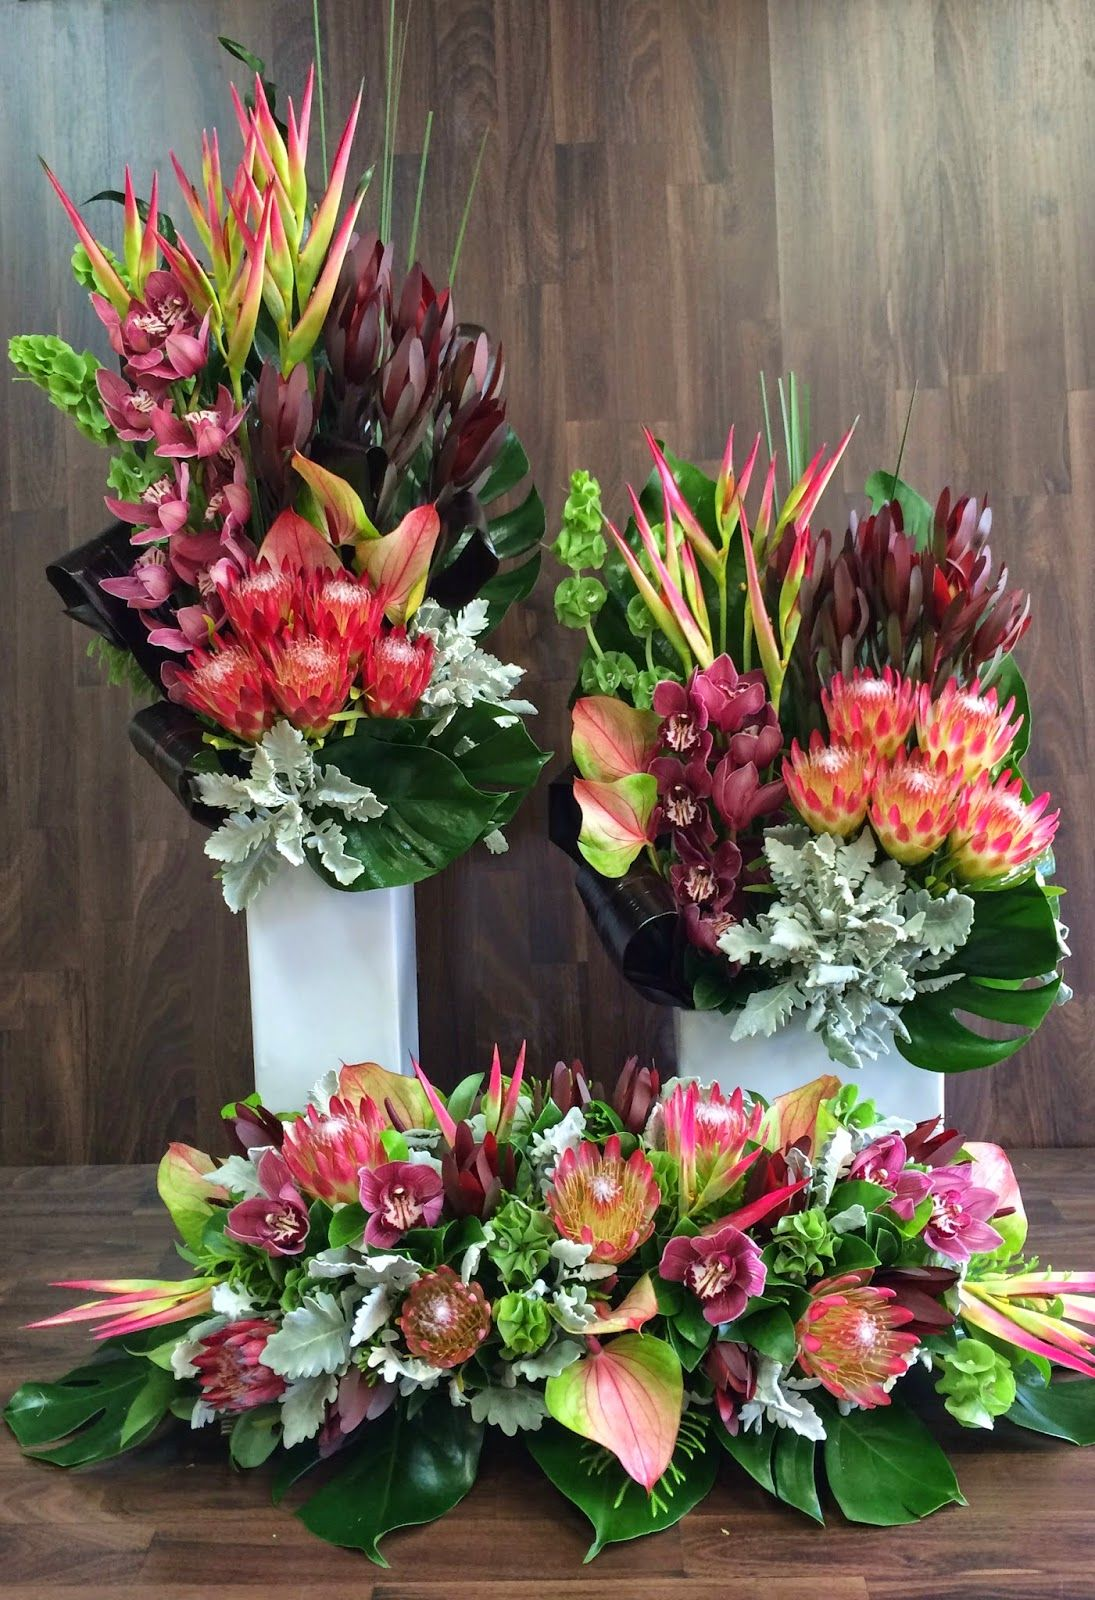 Australian Native Flower Arrangements For Church Event In Baulkham